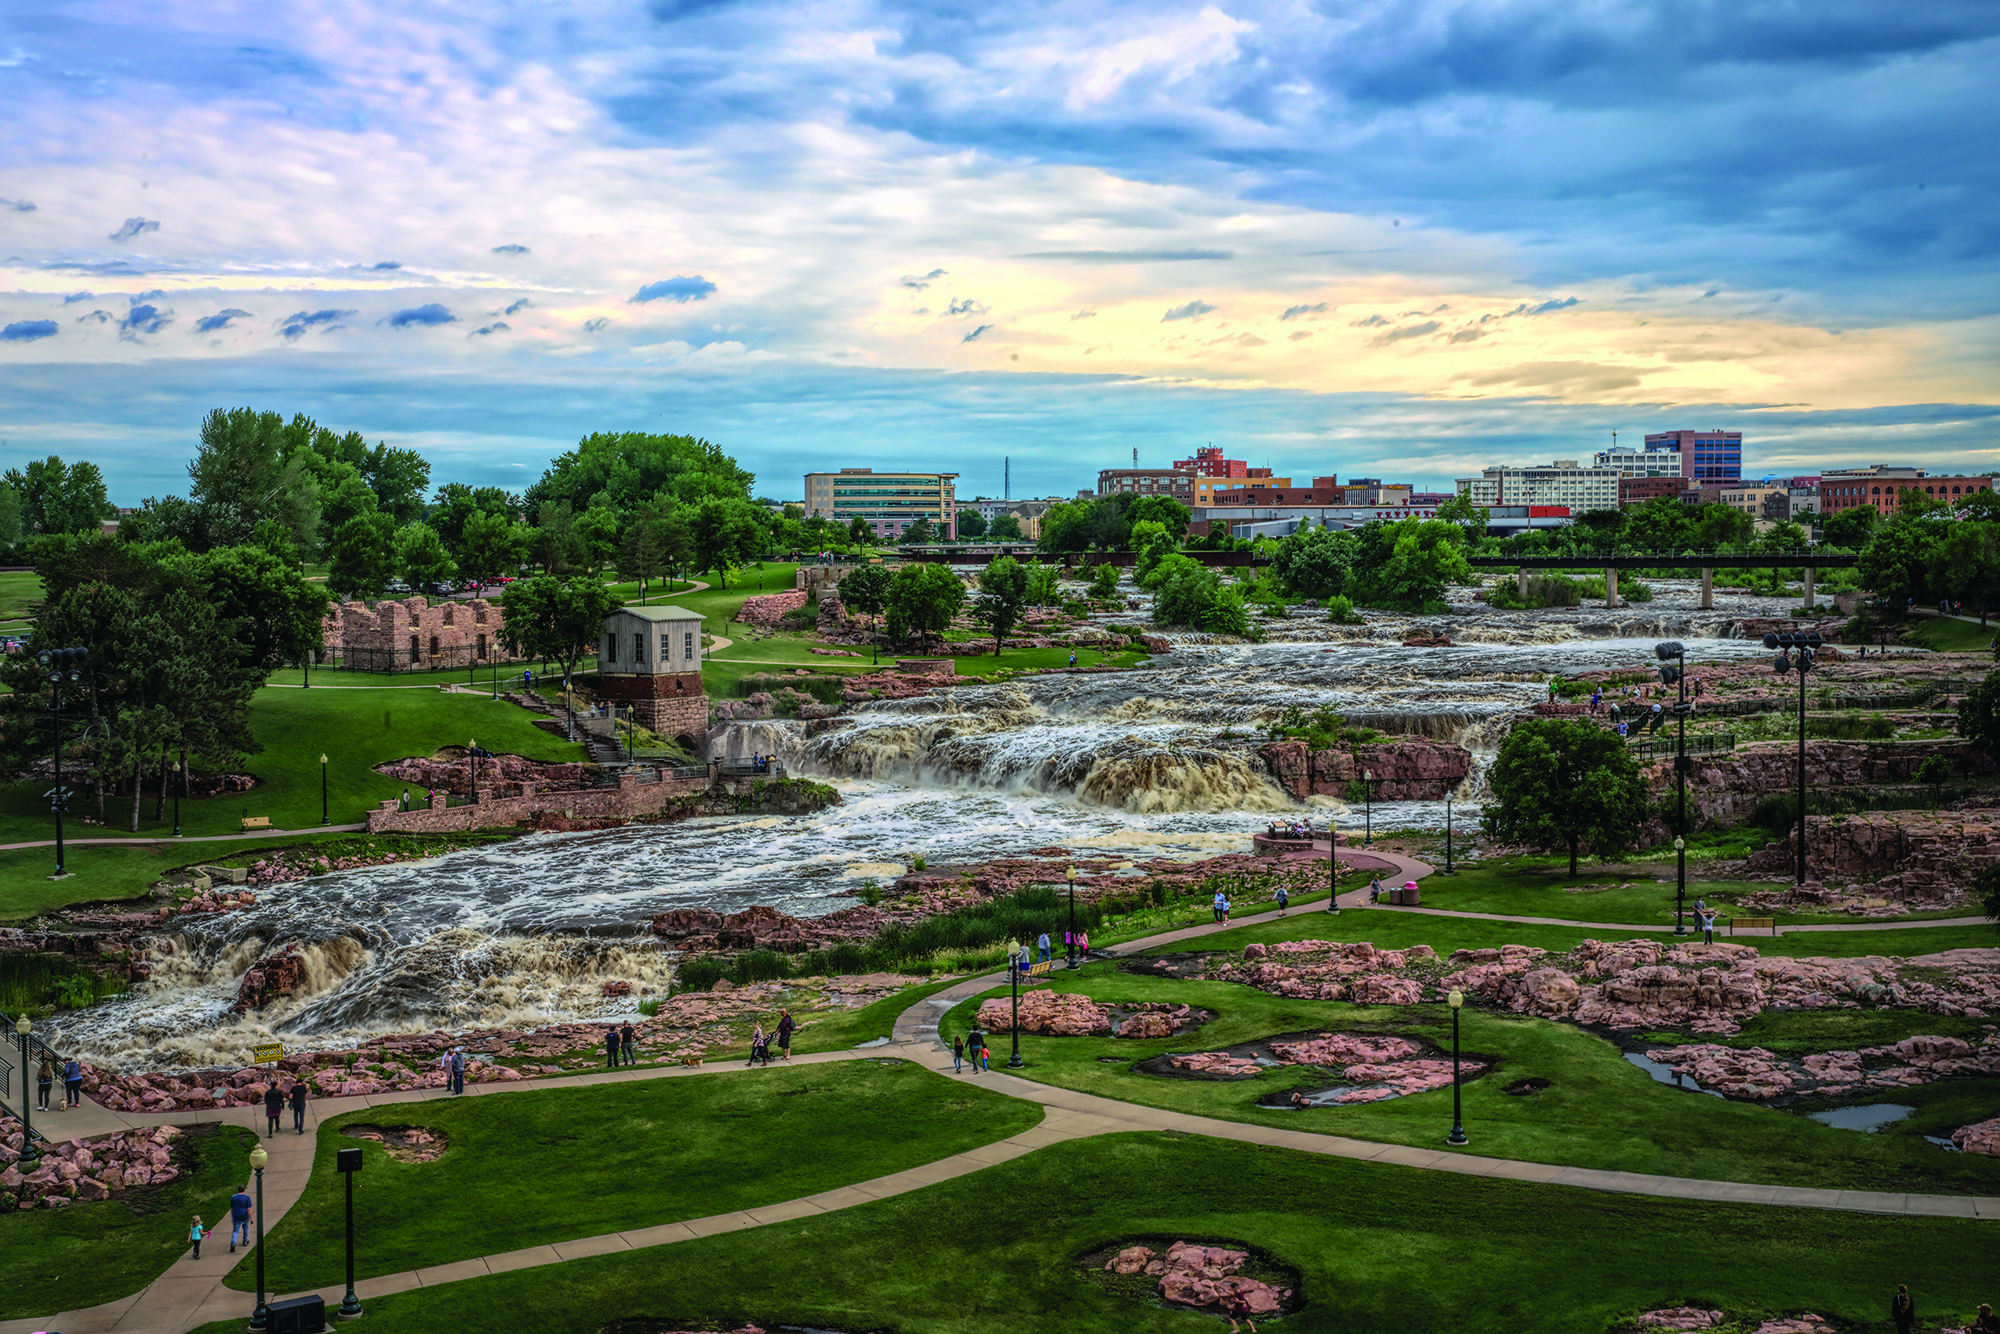 The Top Things To Do in Sioux Falls include visiting the waterfalls